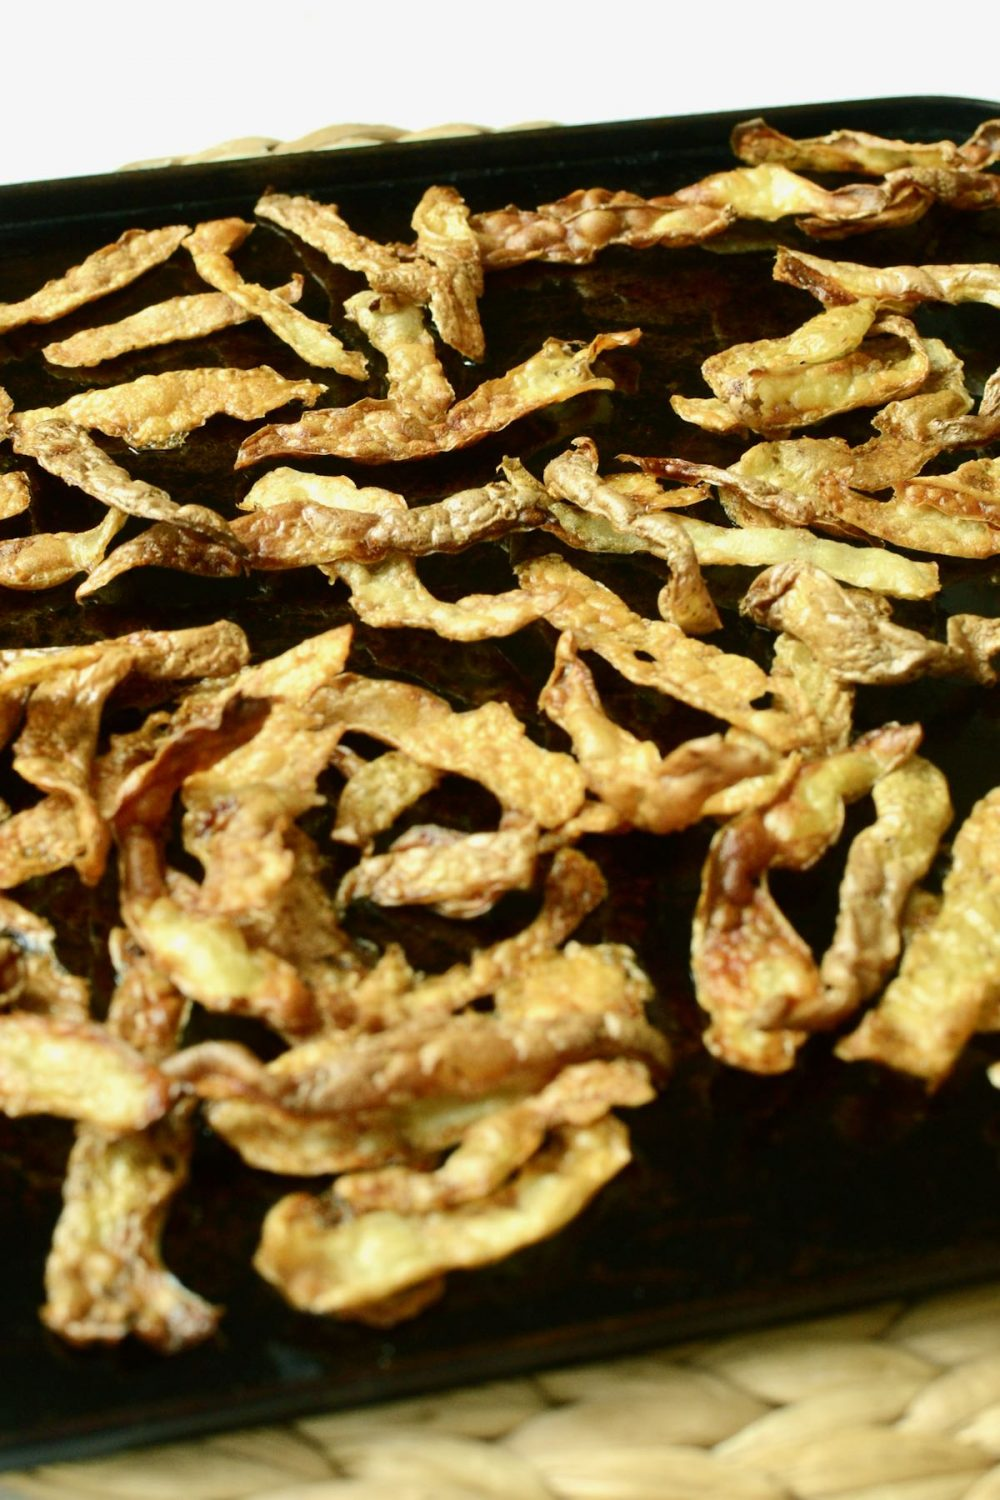 The cooked crisps are golden and crunchy